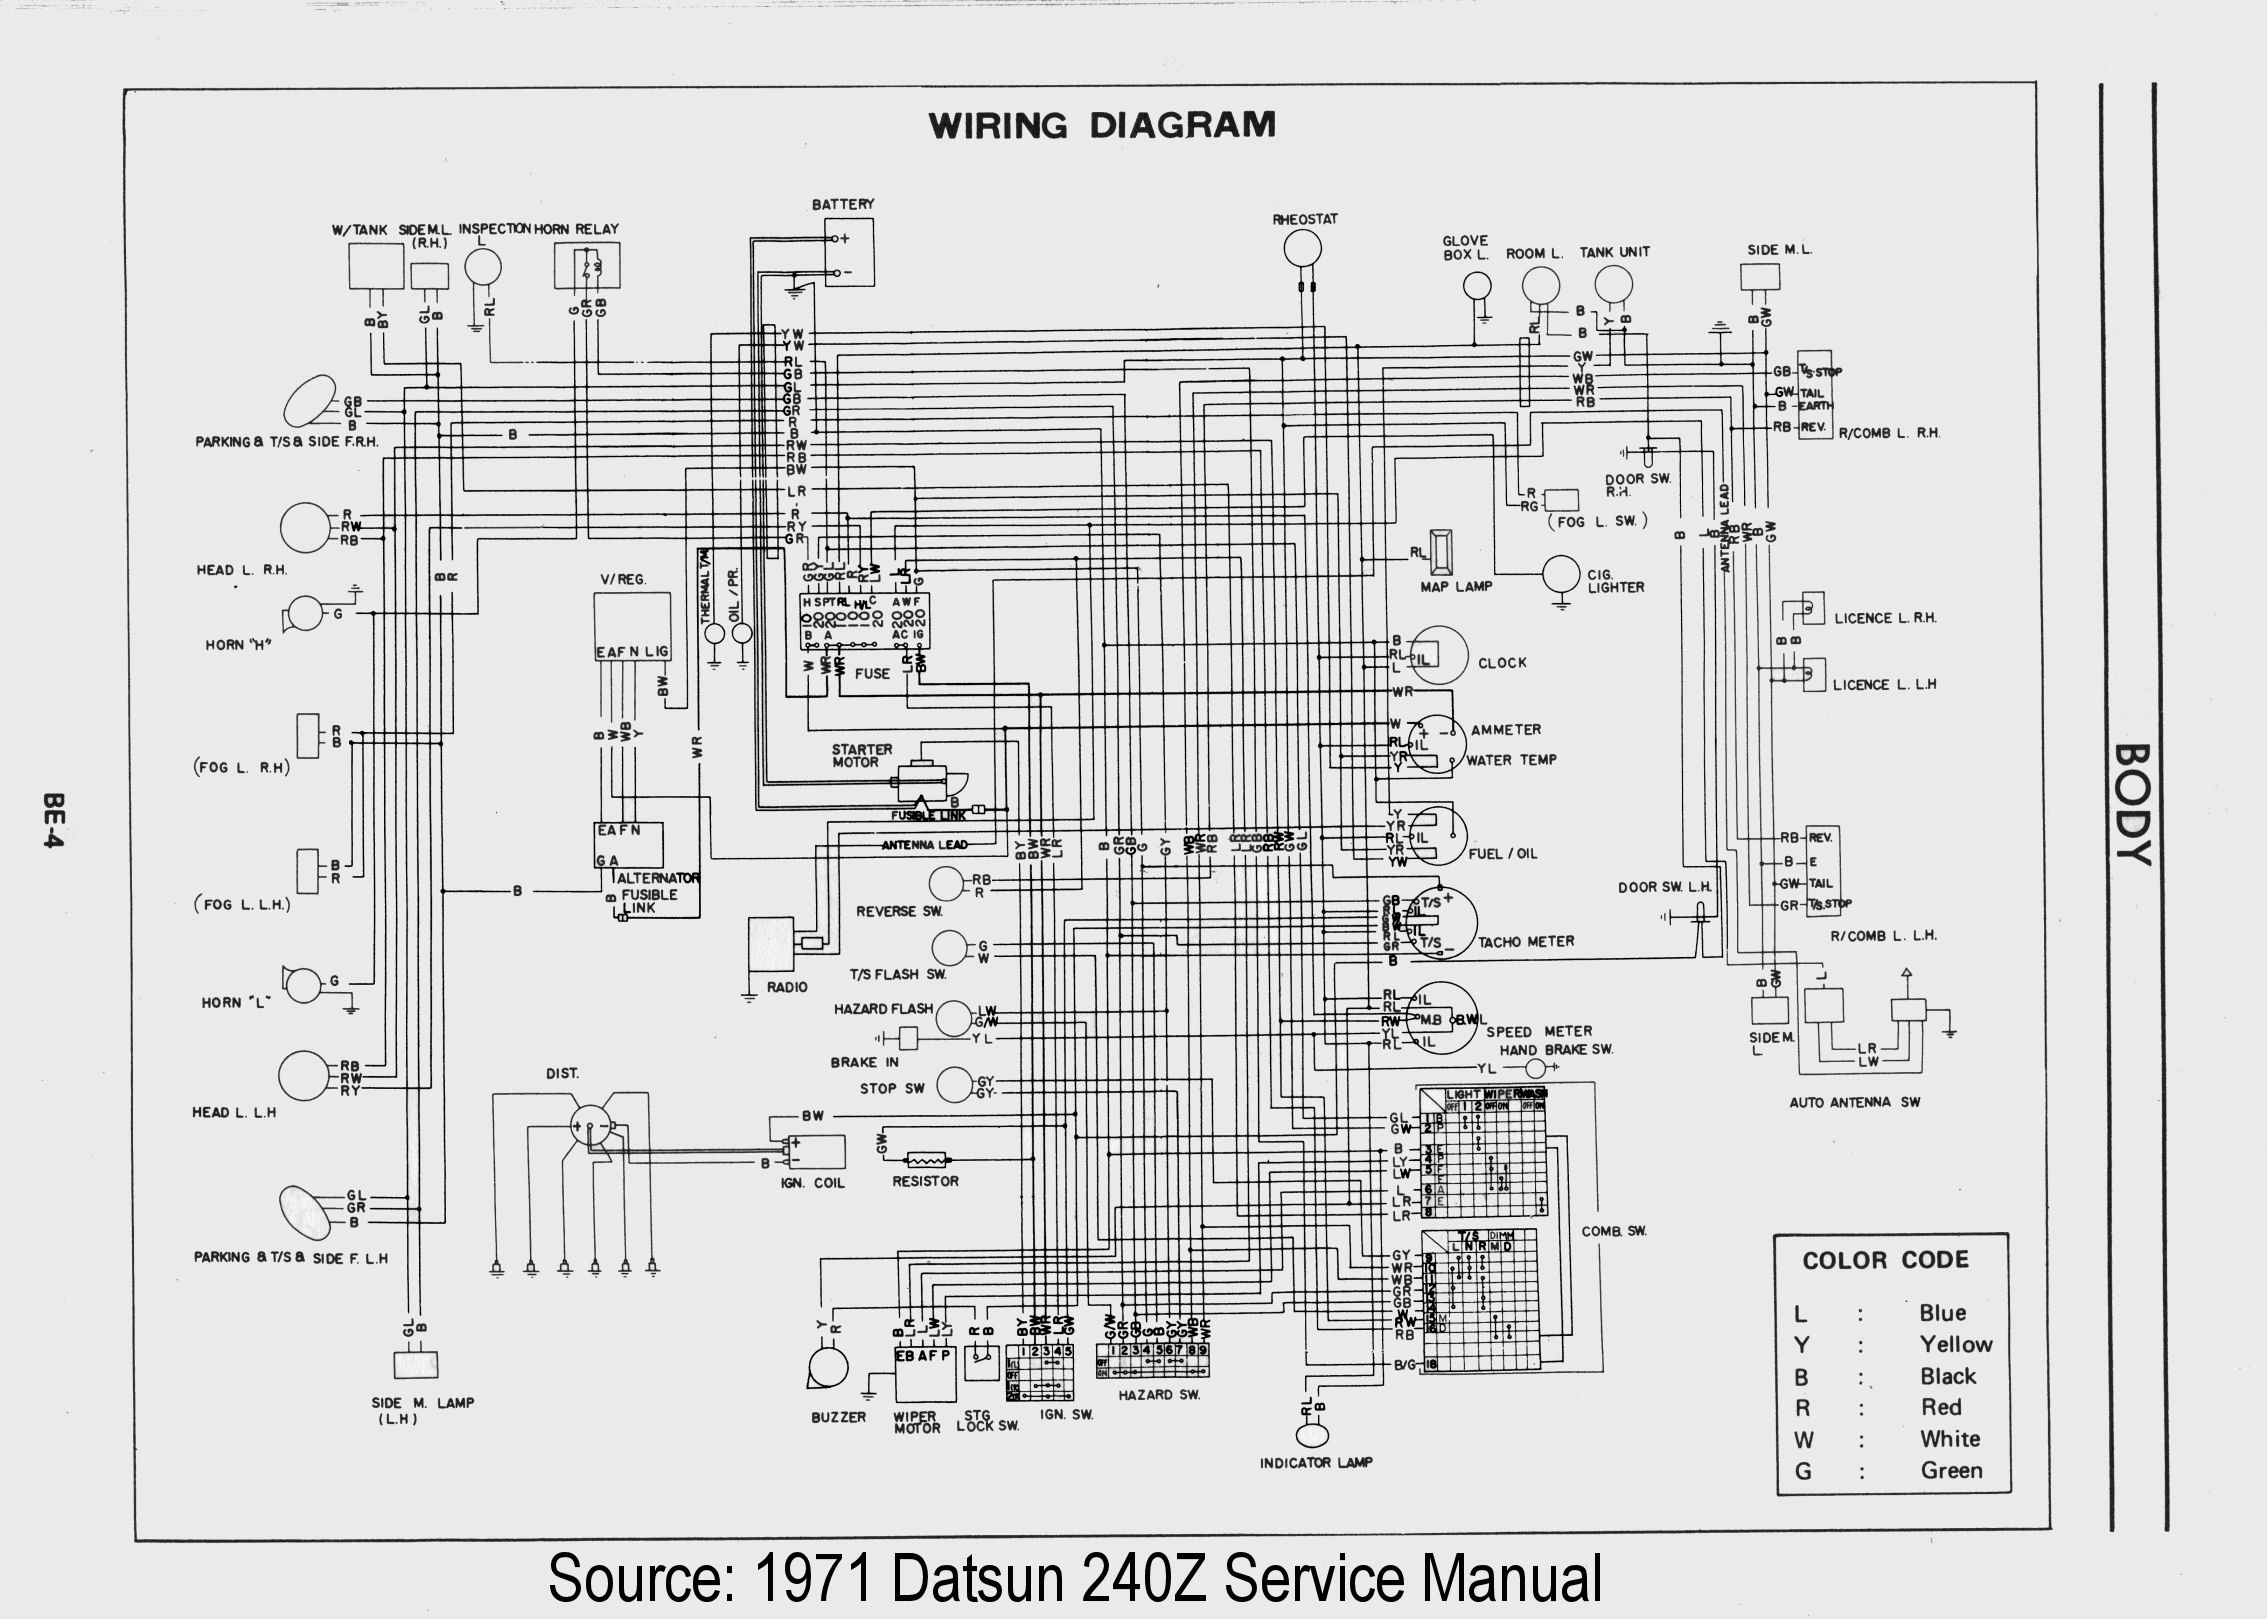 Wiring Diagram HiRes 2 280z wiring diagram 280z tachometer wiring \u2022 wiring diagrams j Redneck Riding Mower at creativeand.co